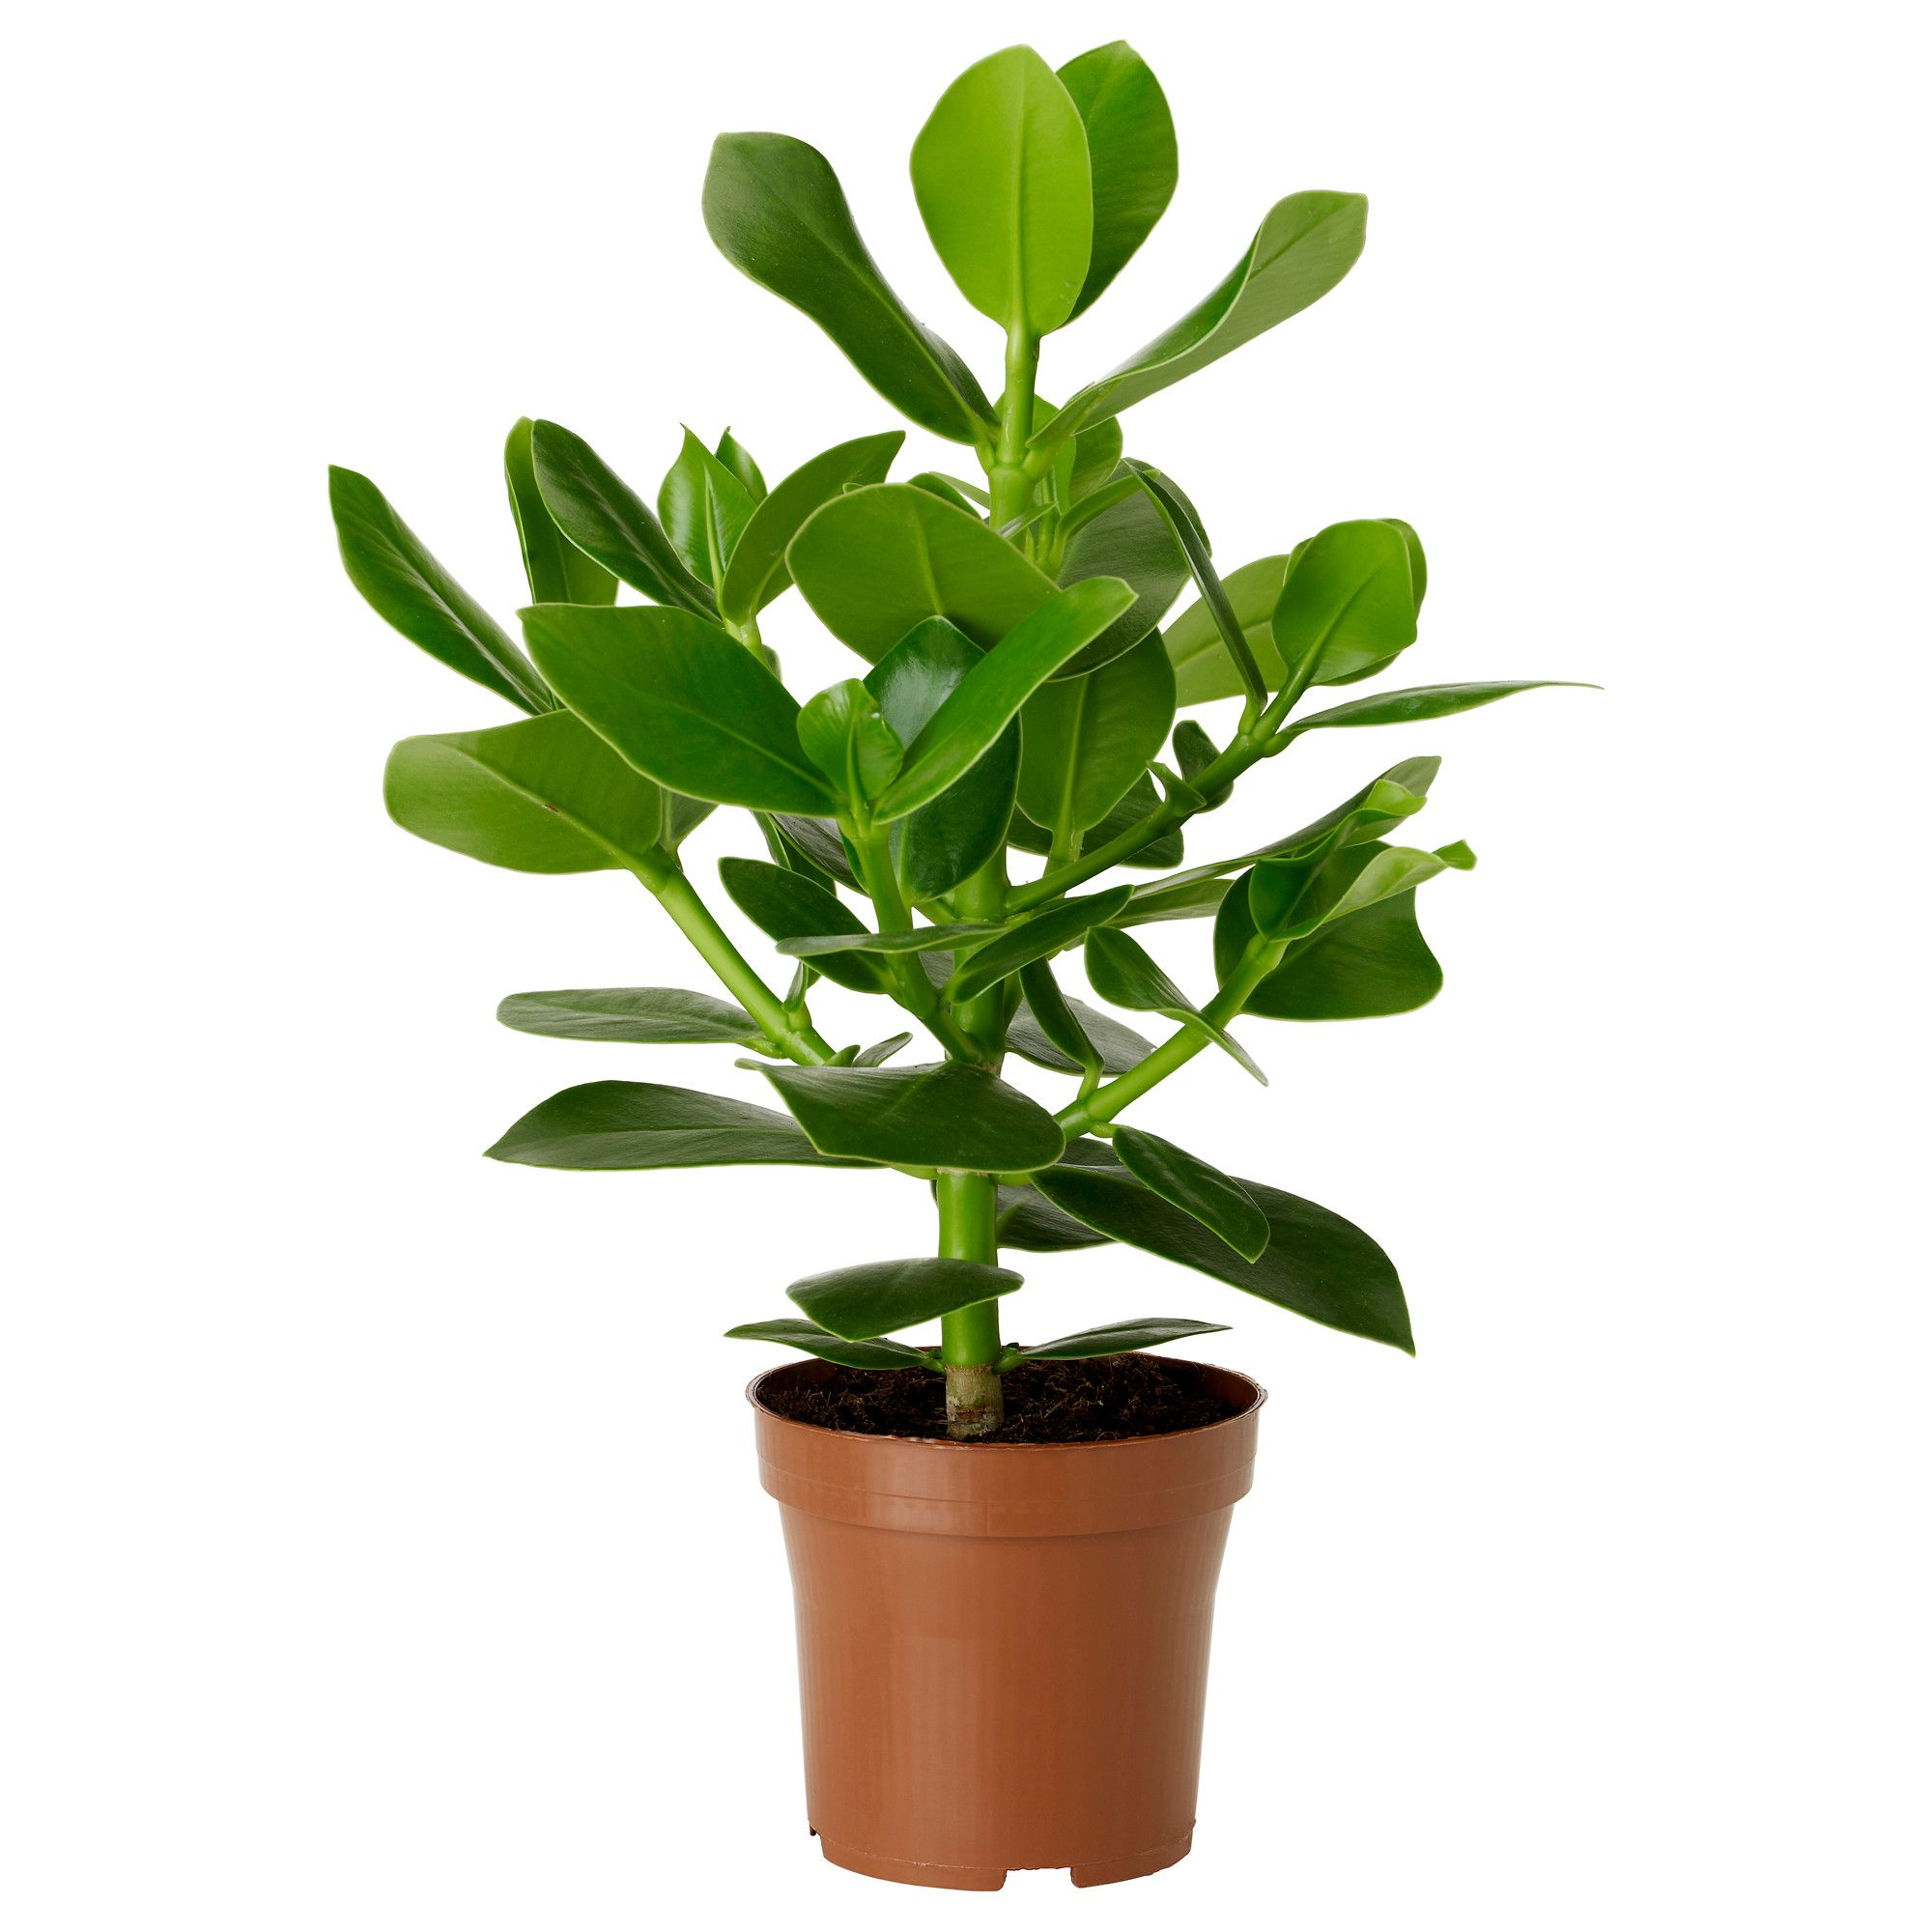 Ikea Planters Large Clusia Planta Clusia Large Indoor Plants And Bedroom Inspo